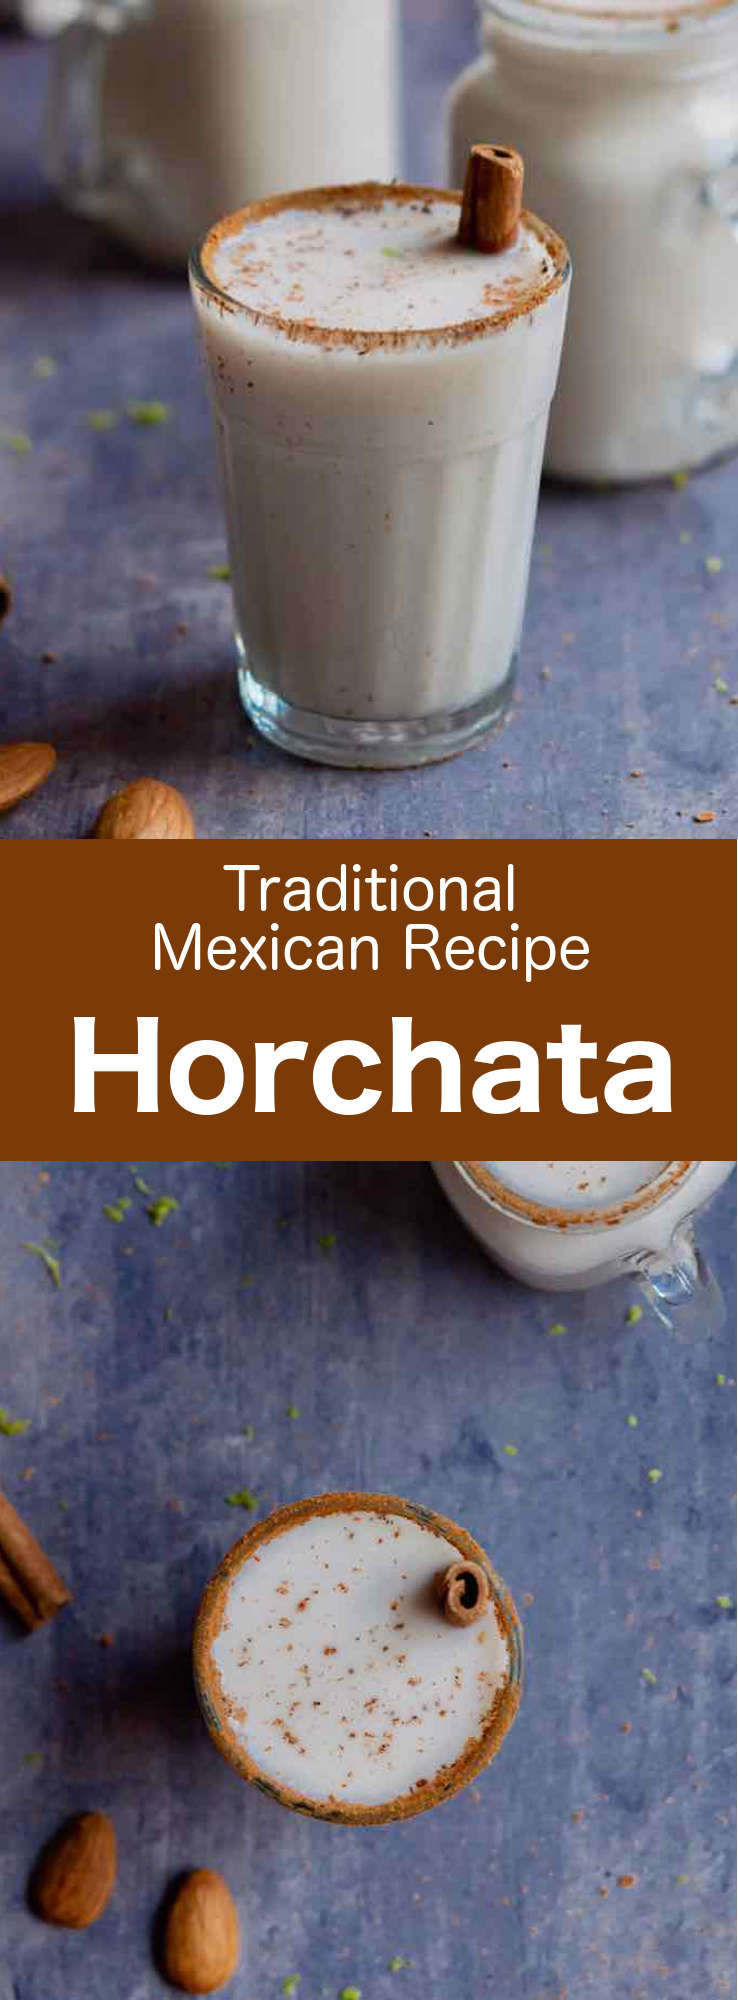 Made with rice and almonds, horchata is a popular beverage throughout Mexico. It is sweet, cold and milky: a wonderful refreshing summer beverage. #Mexican #MexicanFood #MexicanCuisine #MexicanRecipe #MexicanDrink #WorldCuisine #196flavors